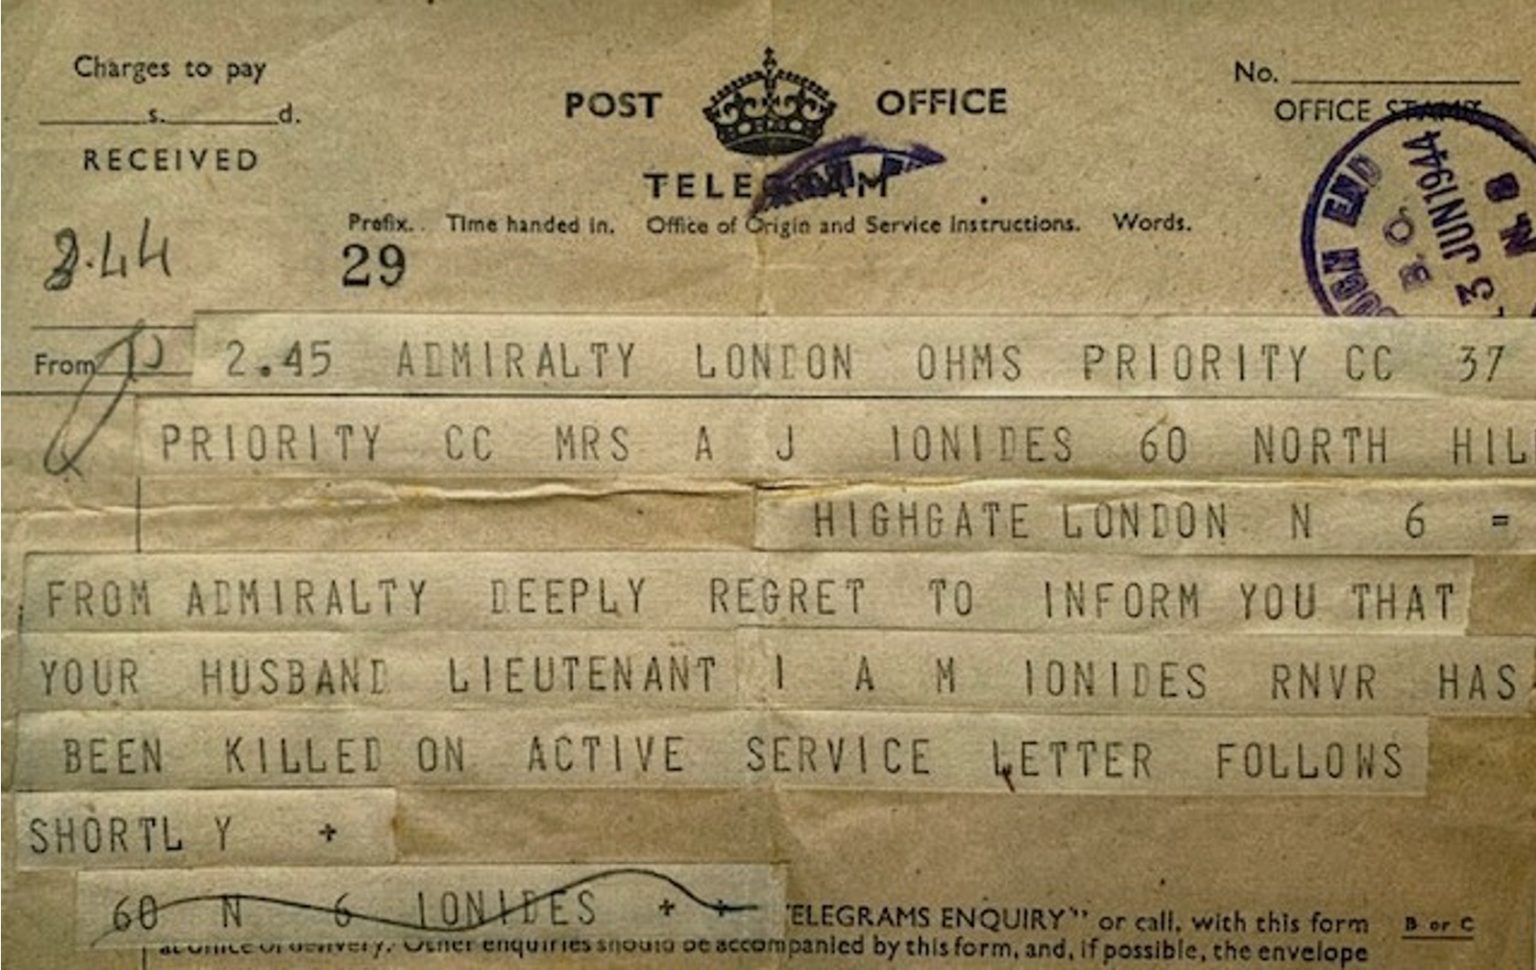 The telegram to confirm the death of Theodore